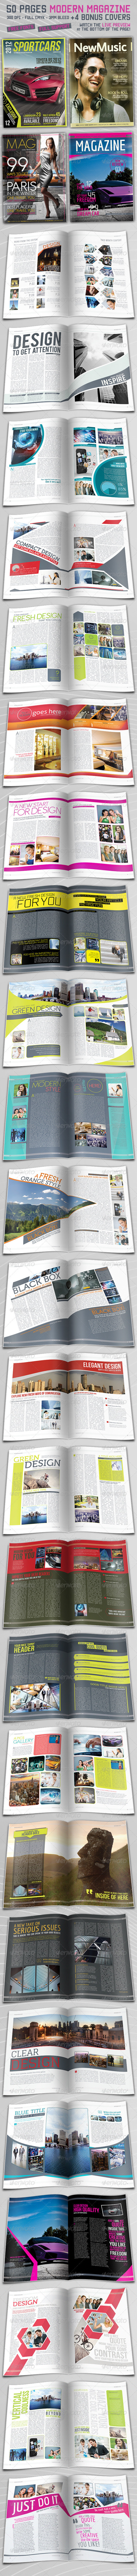 50 Page Modern Magazine Indesign + 4 Covers